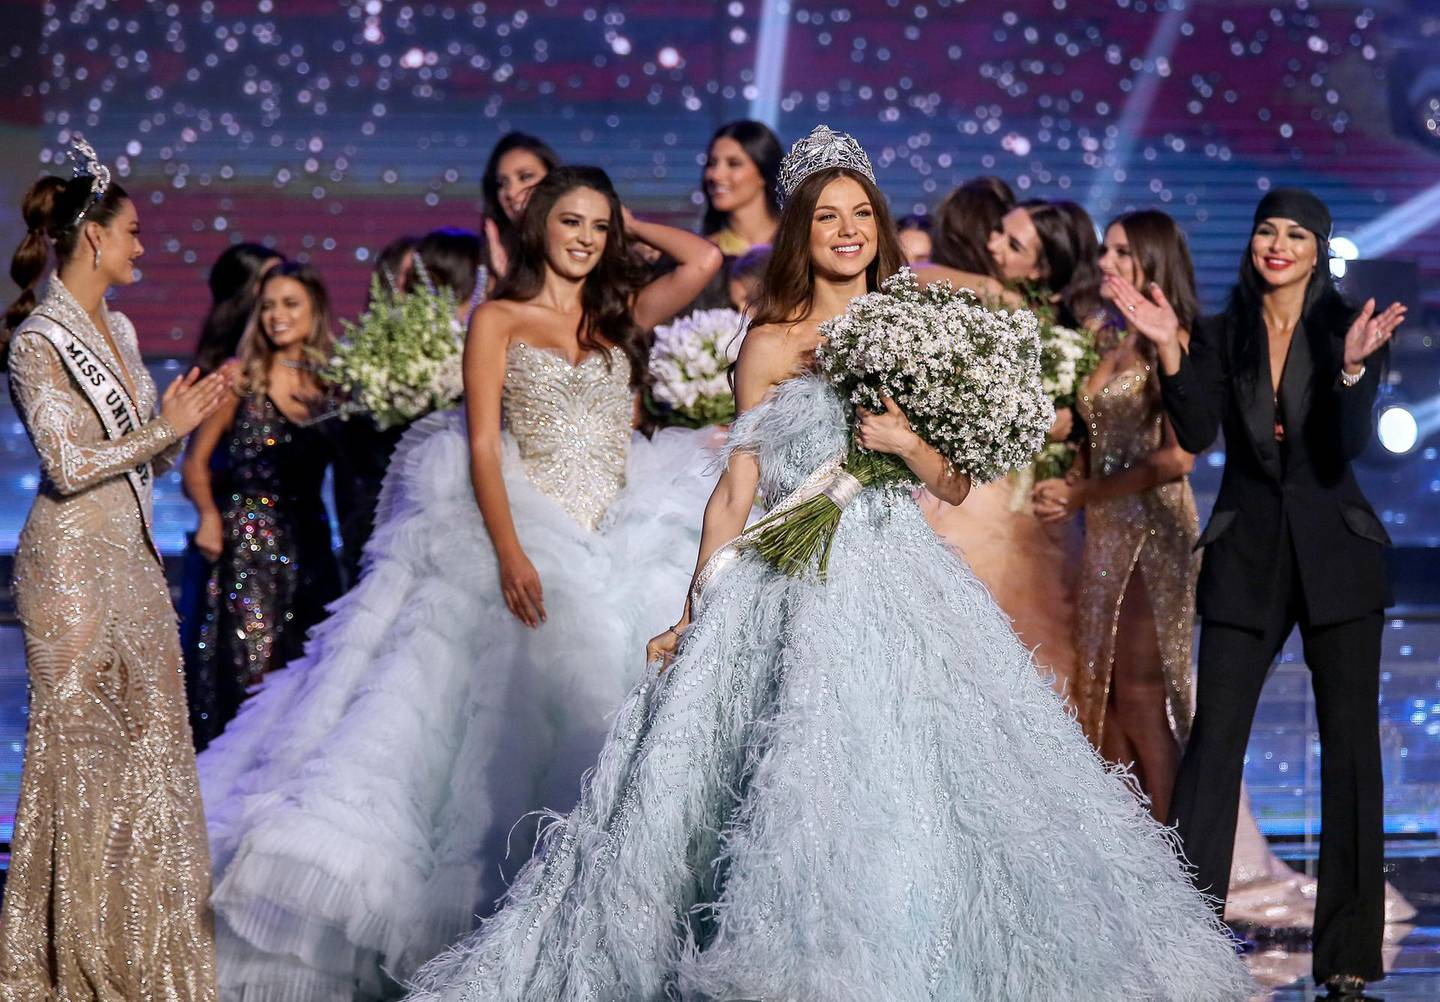 epa07060480 Lebanese Maya Reaidy (C) poses after winning the Miss Lebanon 2018 beauty pageant, next to Lebanese-American actress Miss USA 2010 Rima Fakih (R) and Miss Universe 2017 Demi-Leigh Nel-Peters (L) at forum De Beirut in Beirut, Lebanon, 30 September 2018.  EPA/NABIL MOUNZER